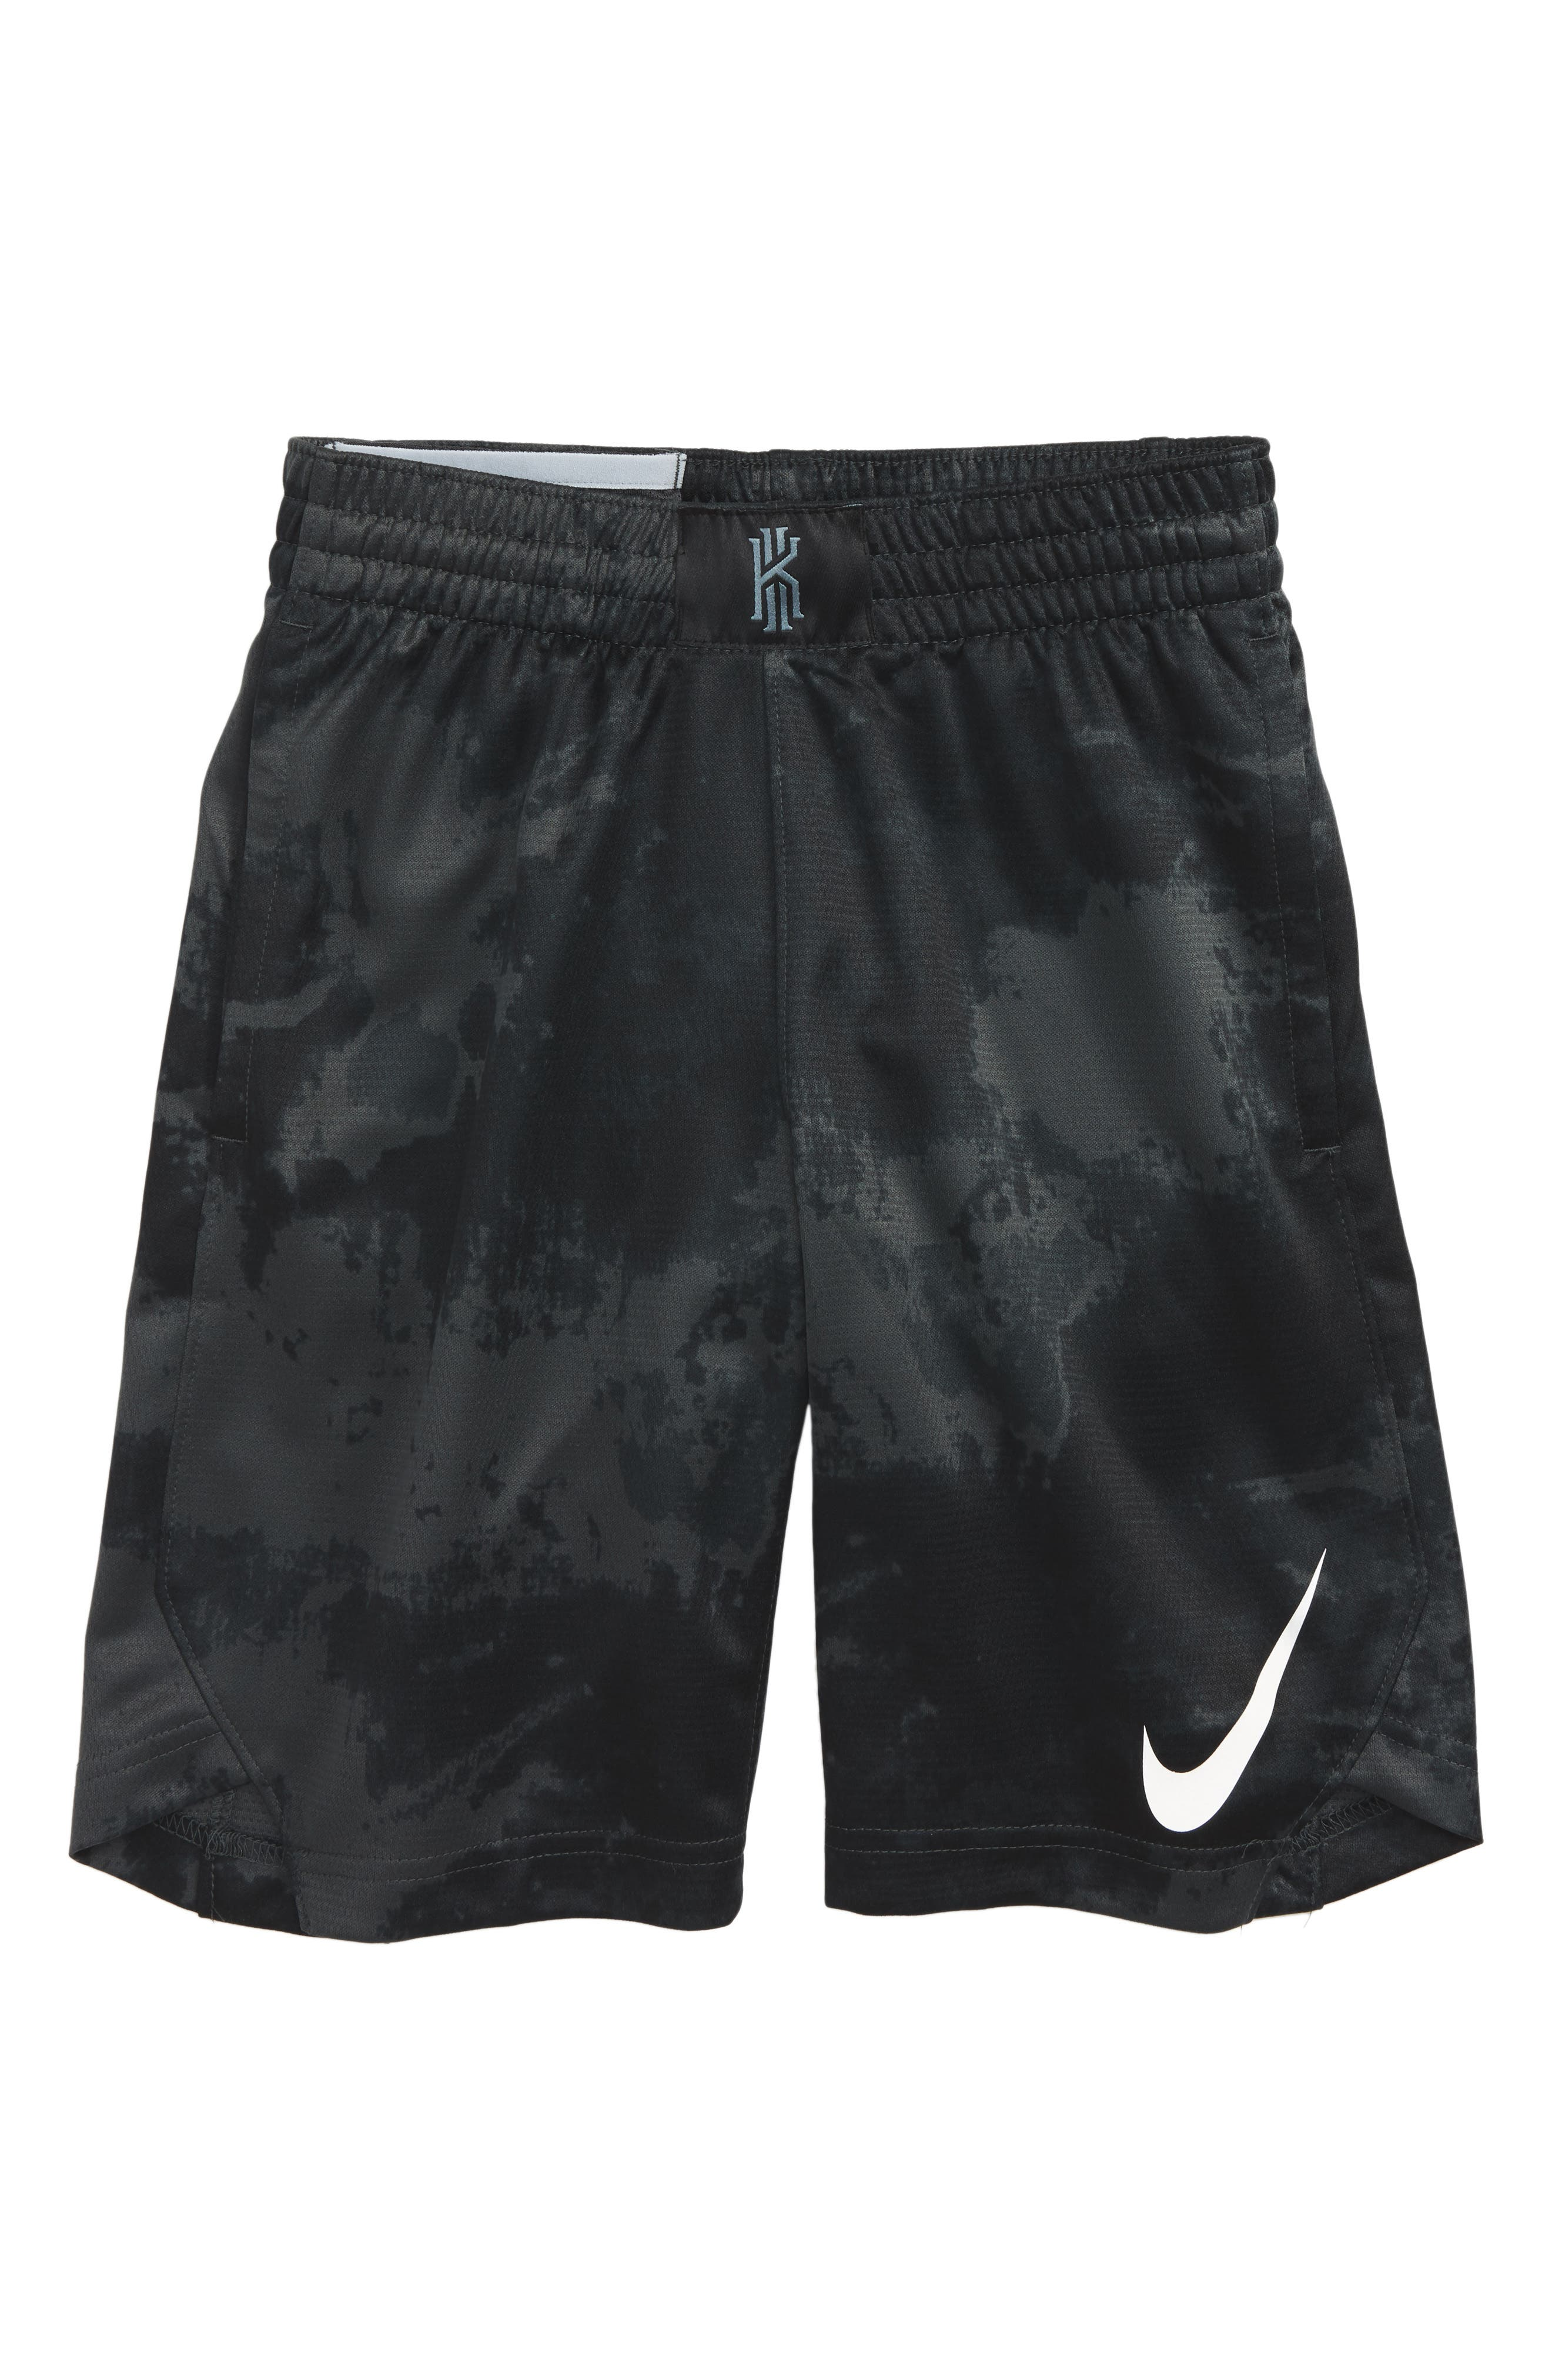 Main Image - Nike Dry Kyrie Elite Basketball Shorts (Little Boys & Big Boys)